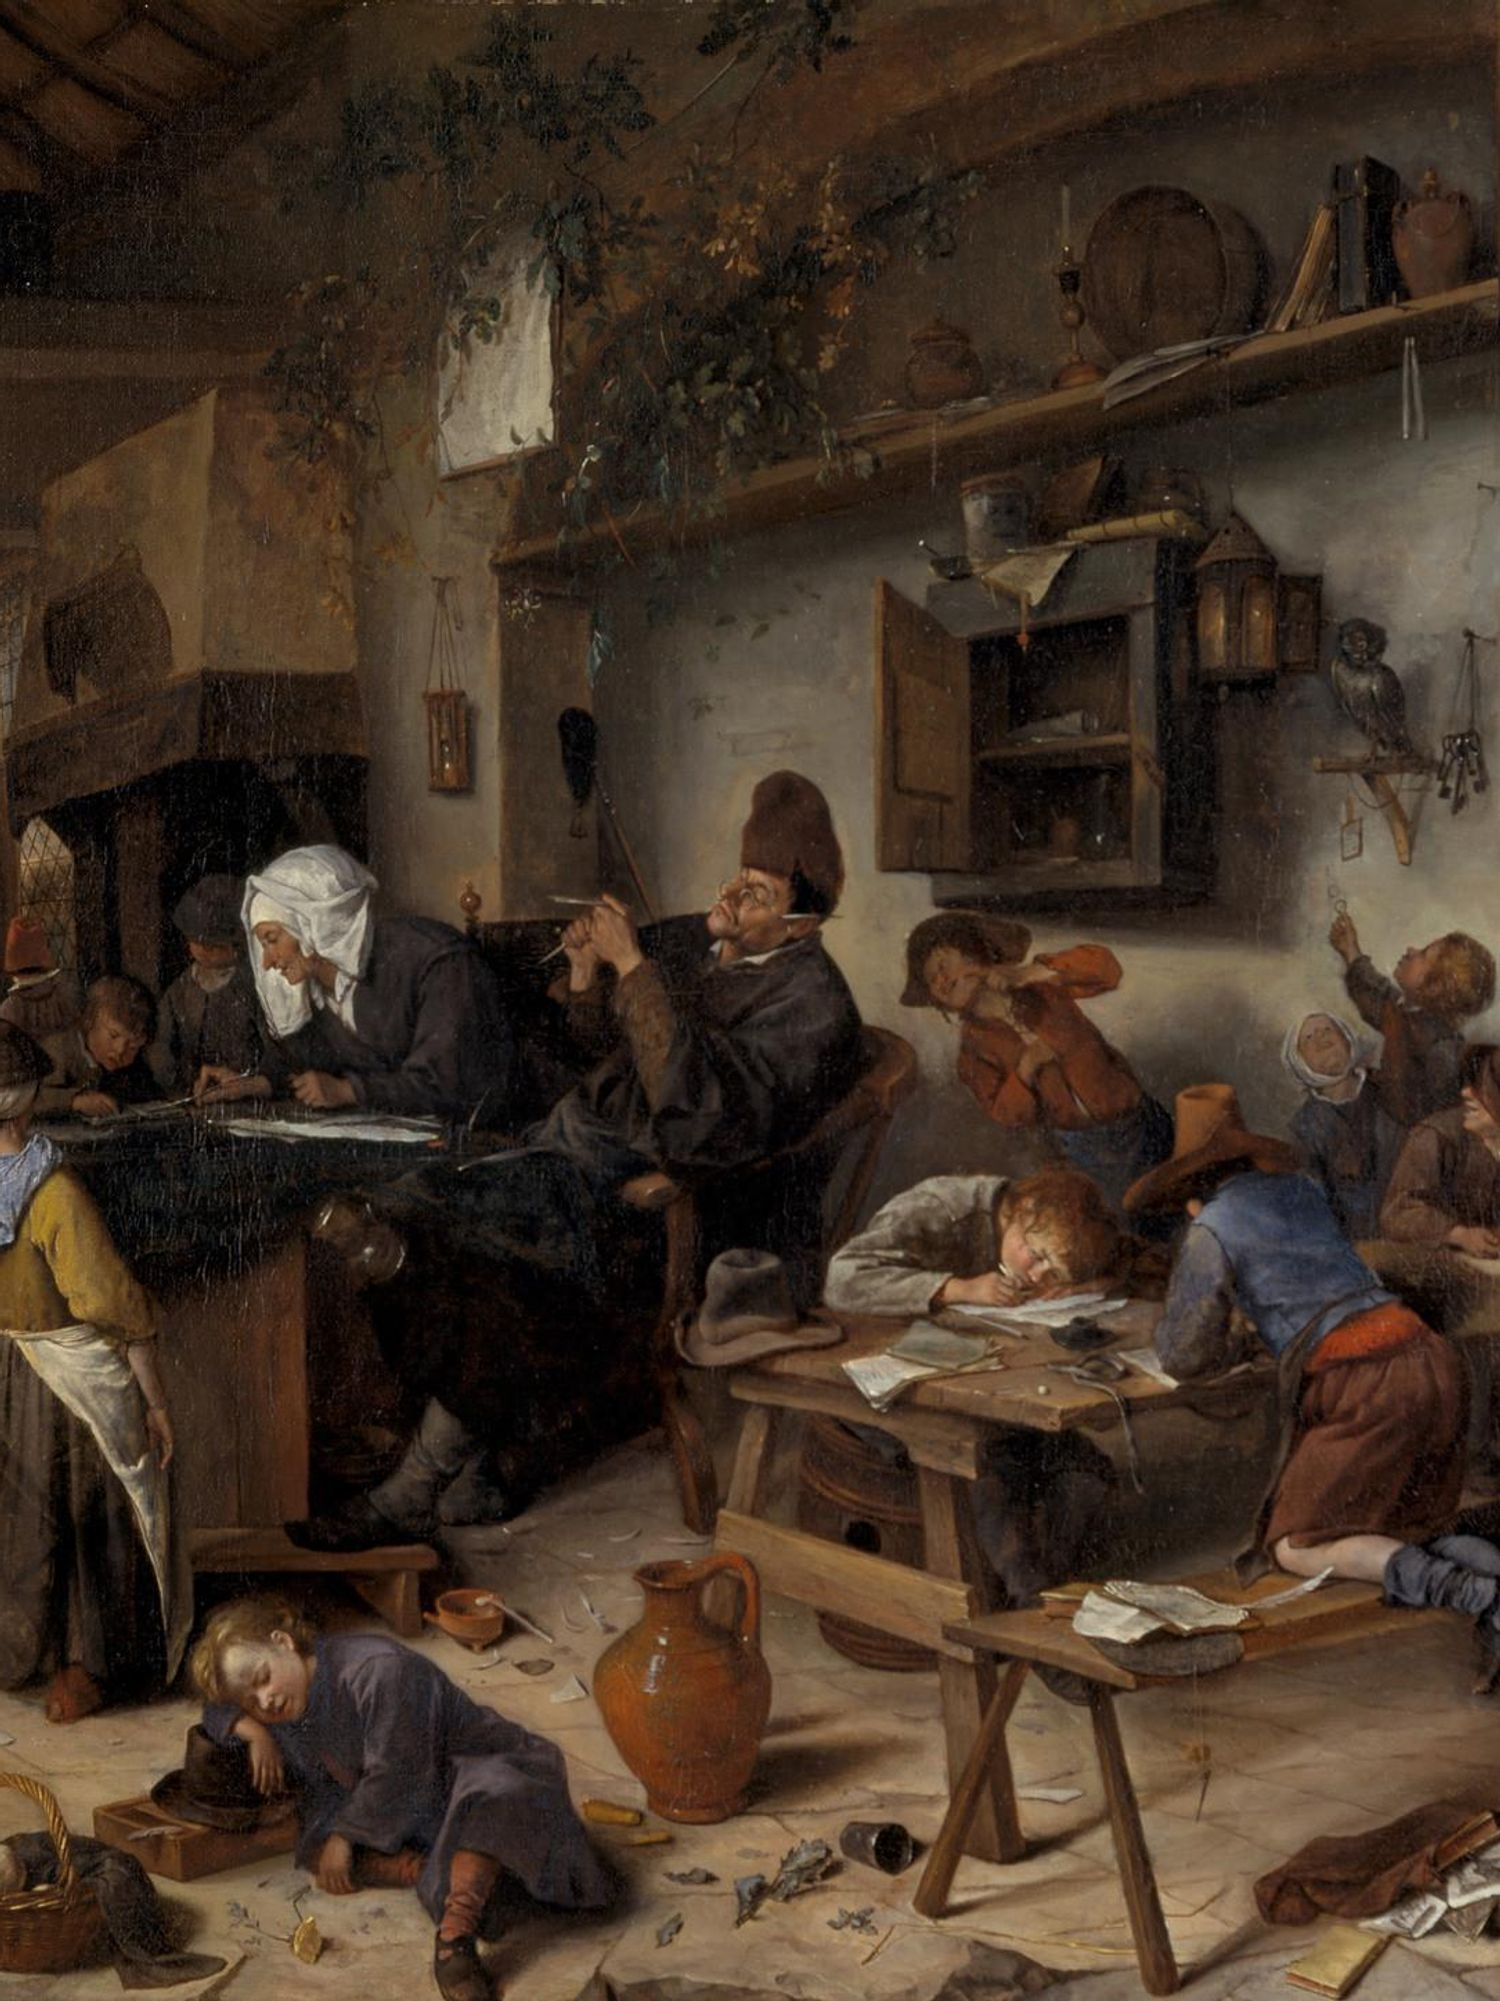 The birth of childhood: A brief history of the European child - Big Think